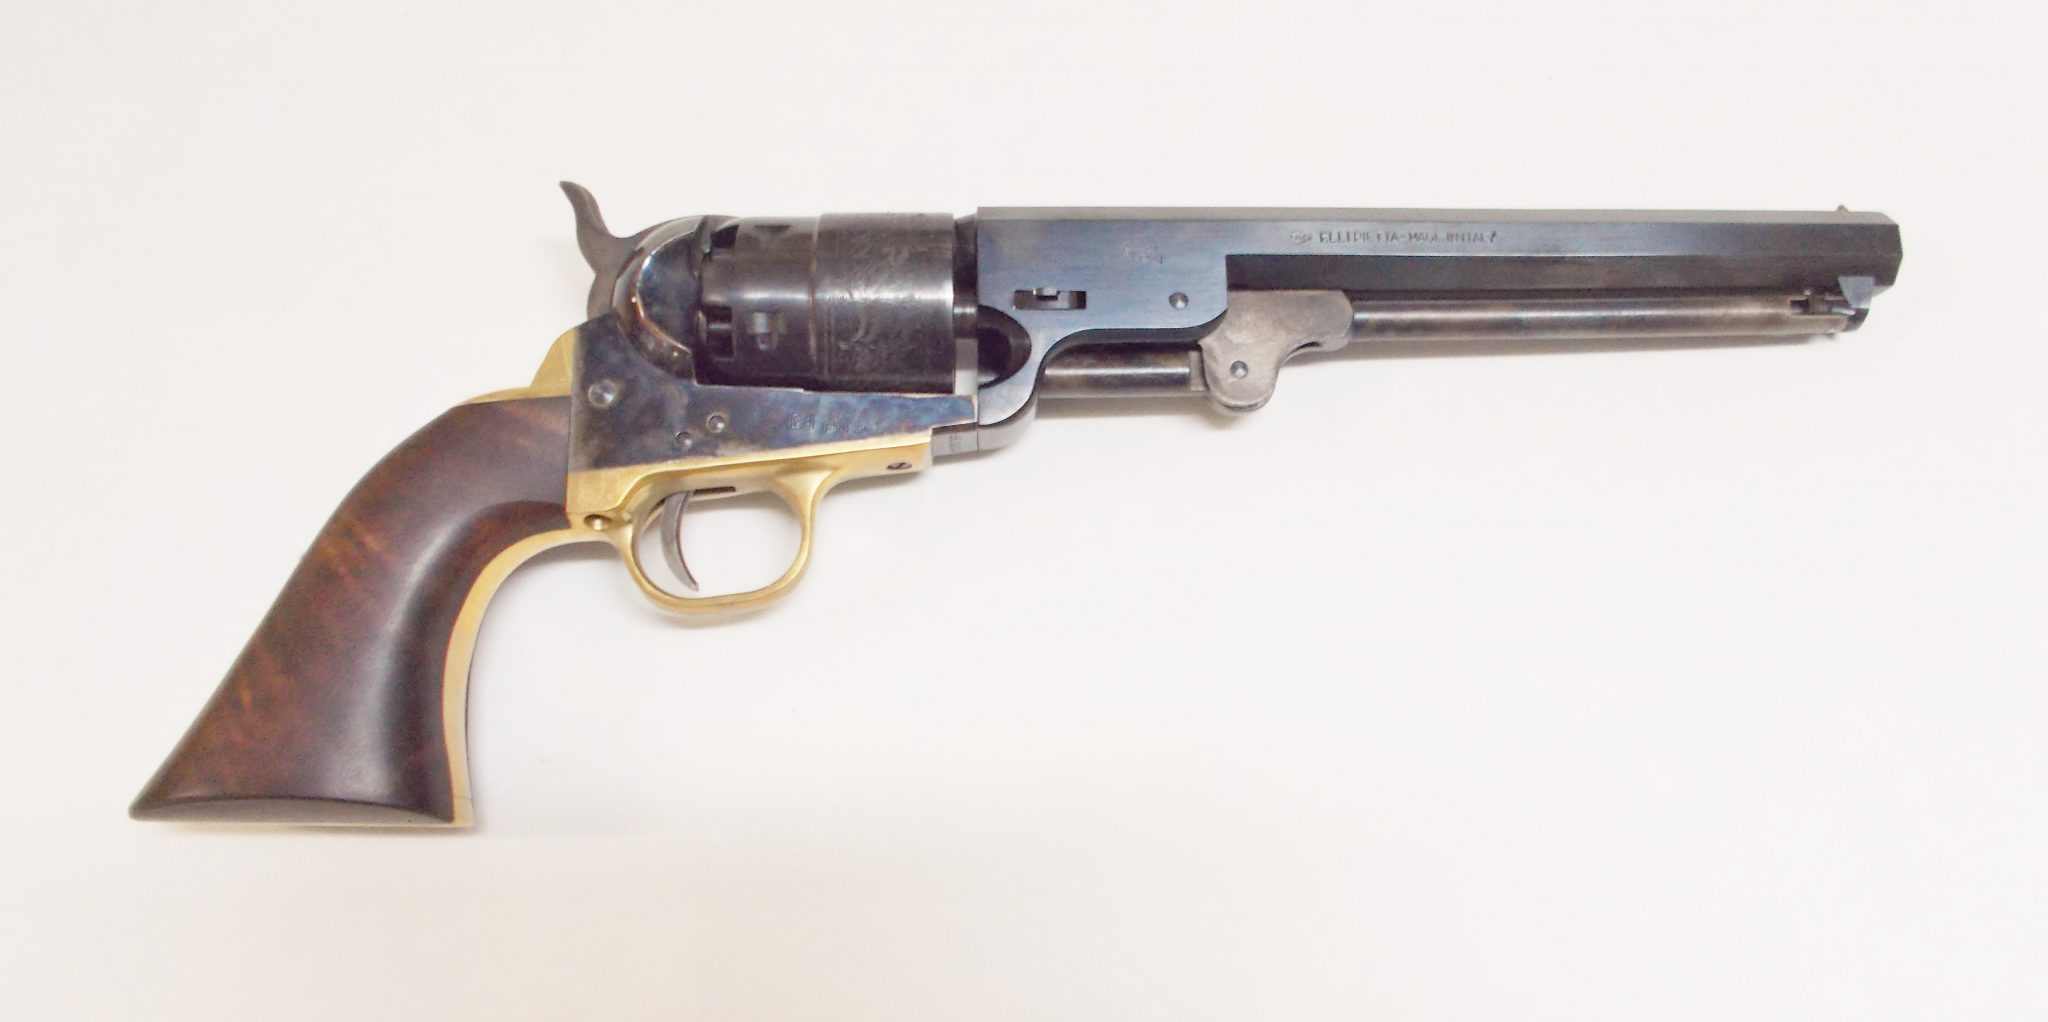 1851 colt navy steel frame 44 cal muzzle loading and more